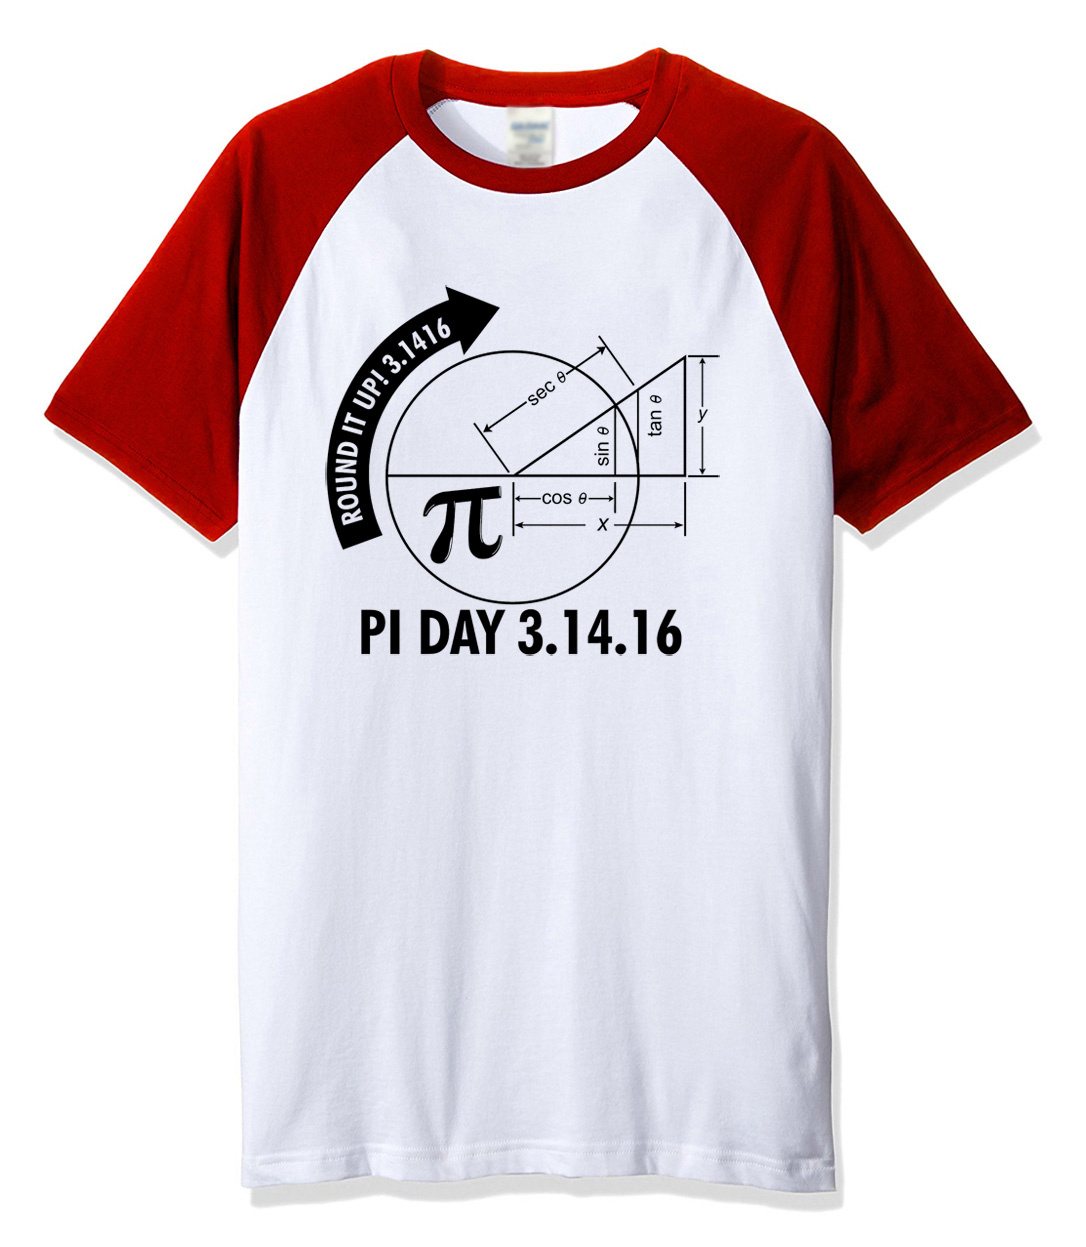 Hot 2018 summer tshirt Pi Day 3.1416 Round It Up Math Graph STEM t-shirt harajuku streetwear fitness clothes raglan t shirt men